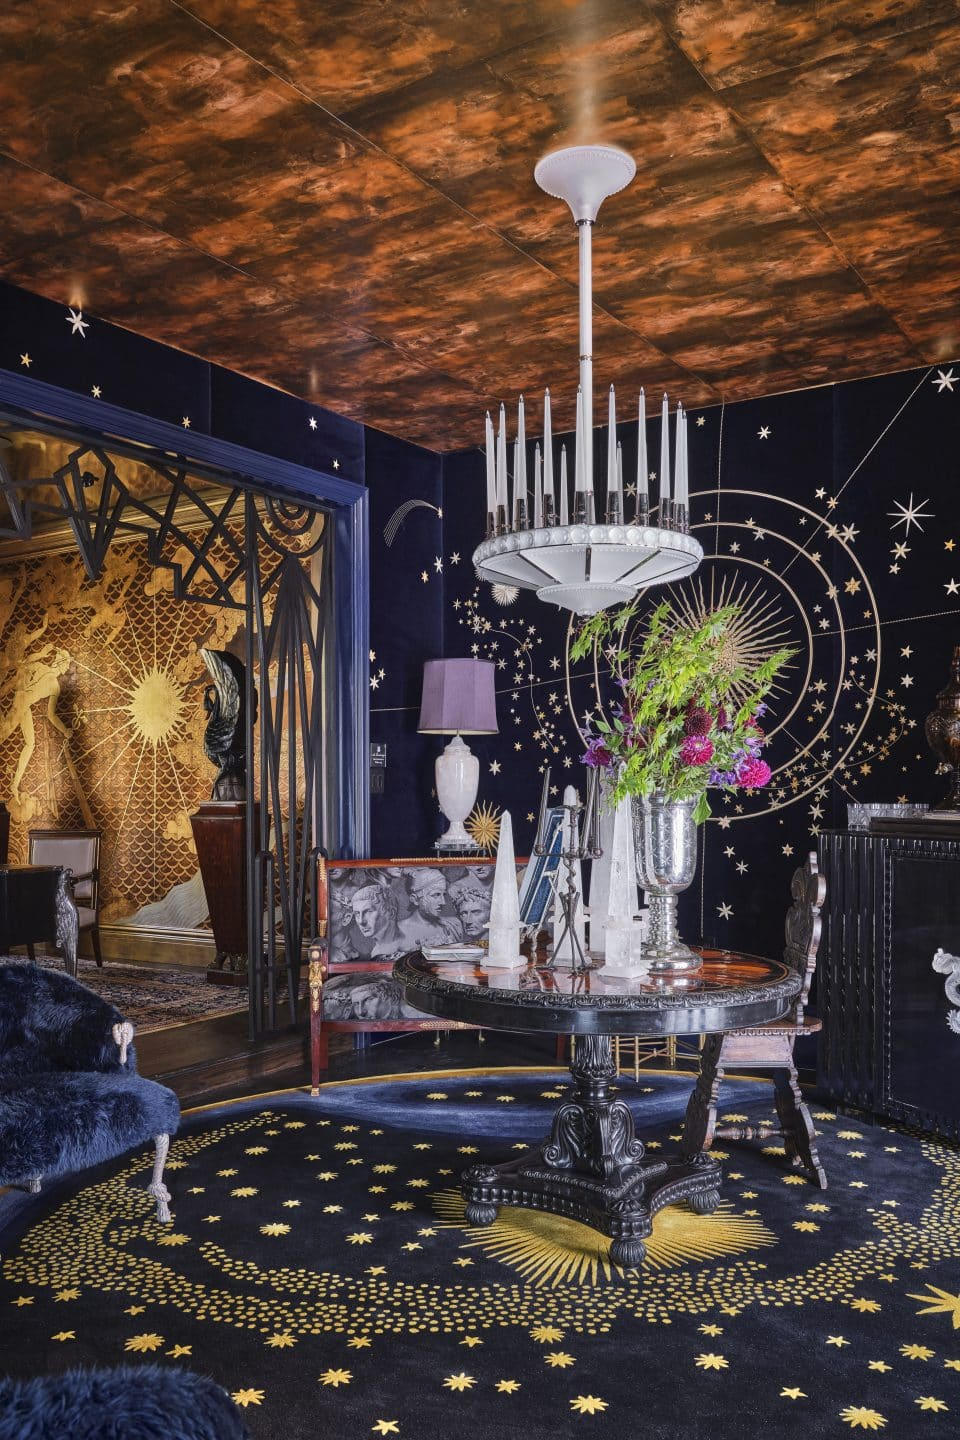 The Show House Is Back: Kips Bay Dallas Boasts an Incredible Roster of Talent